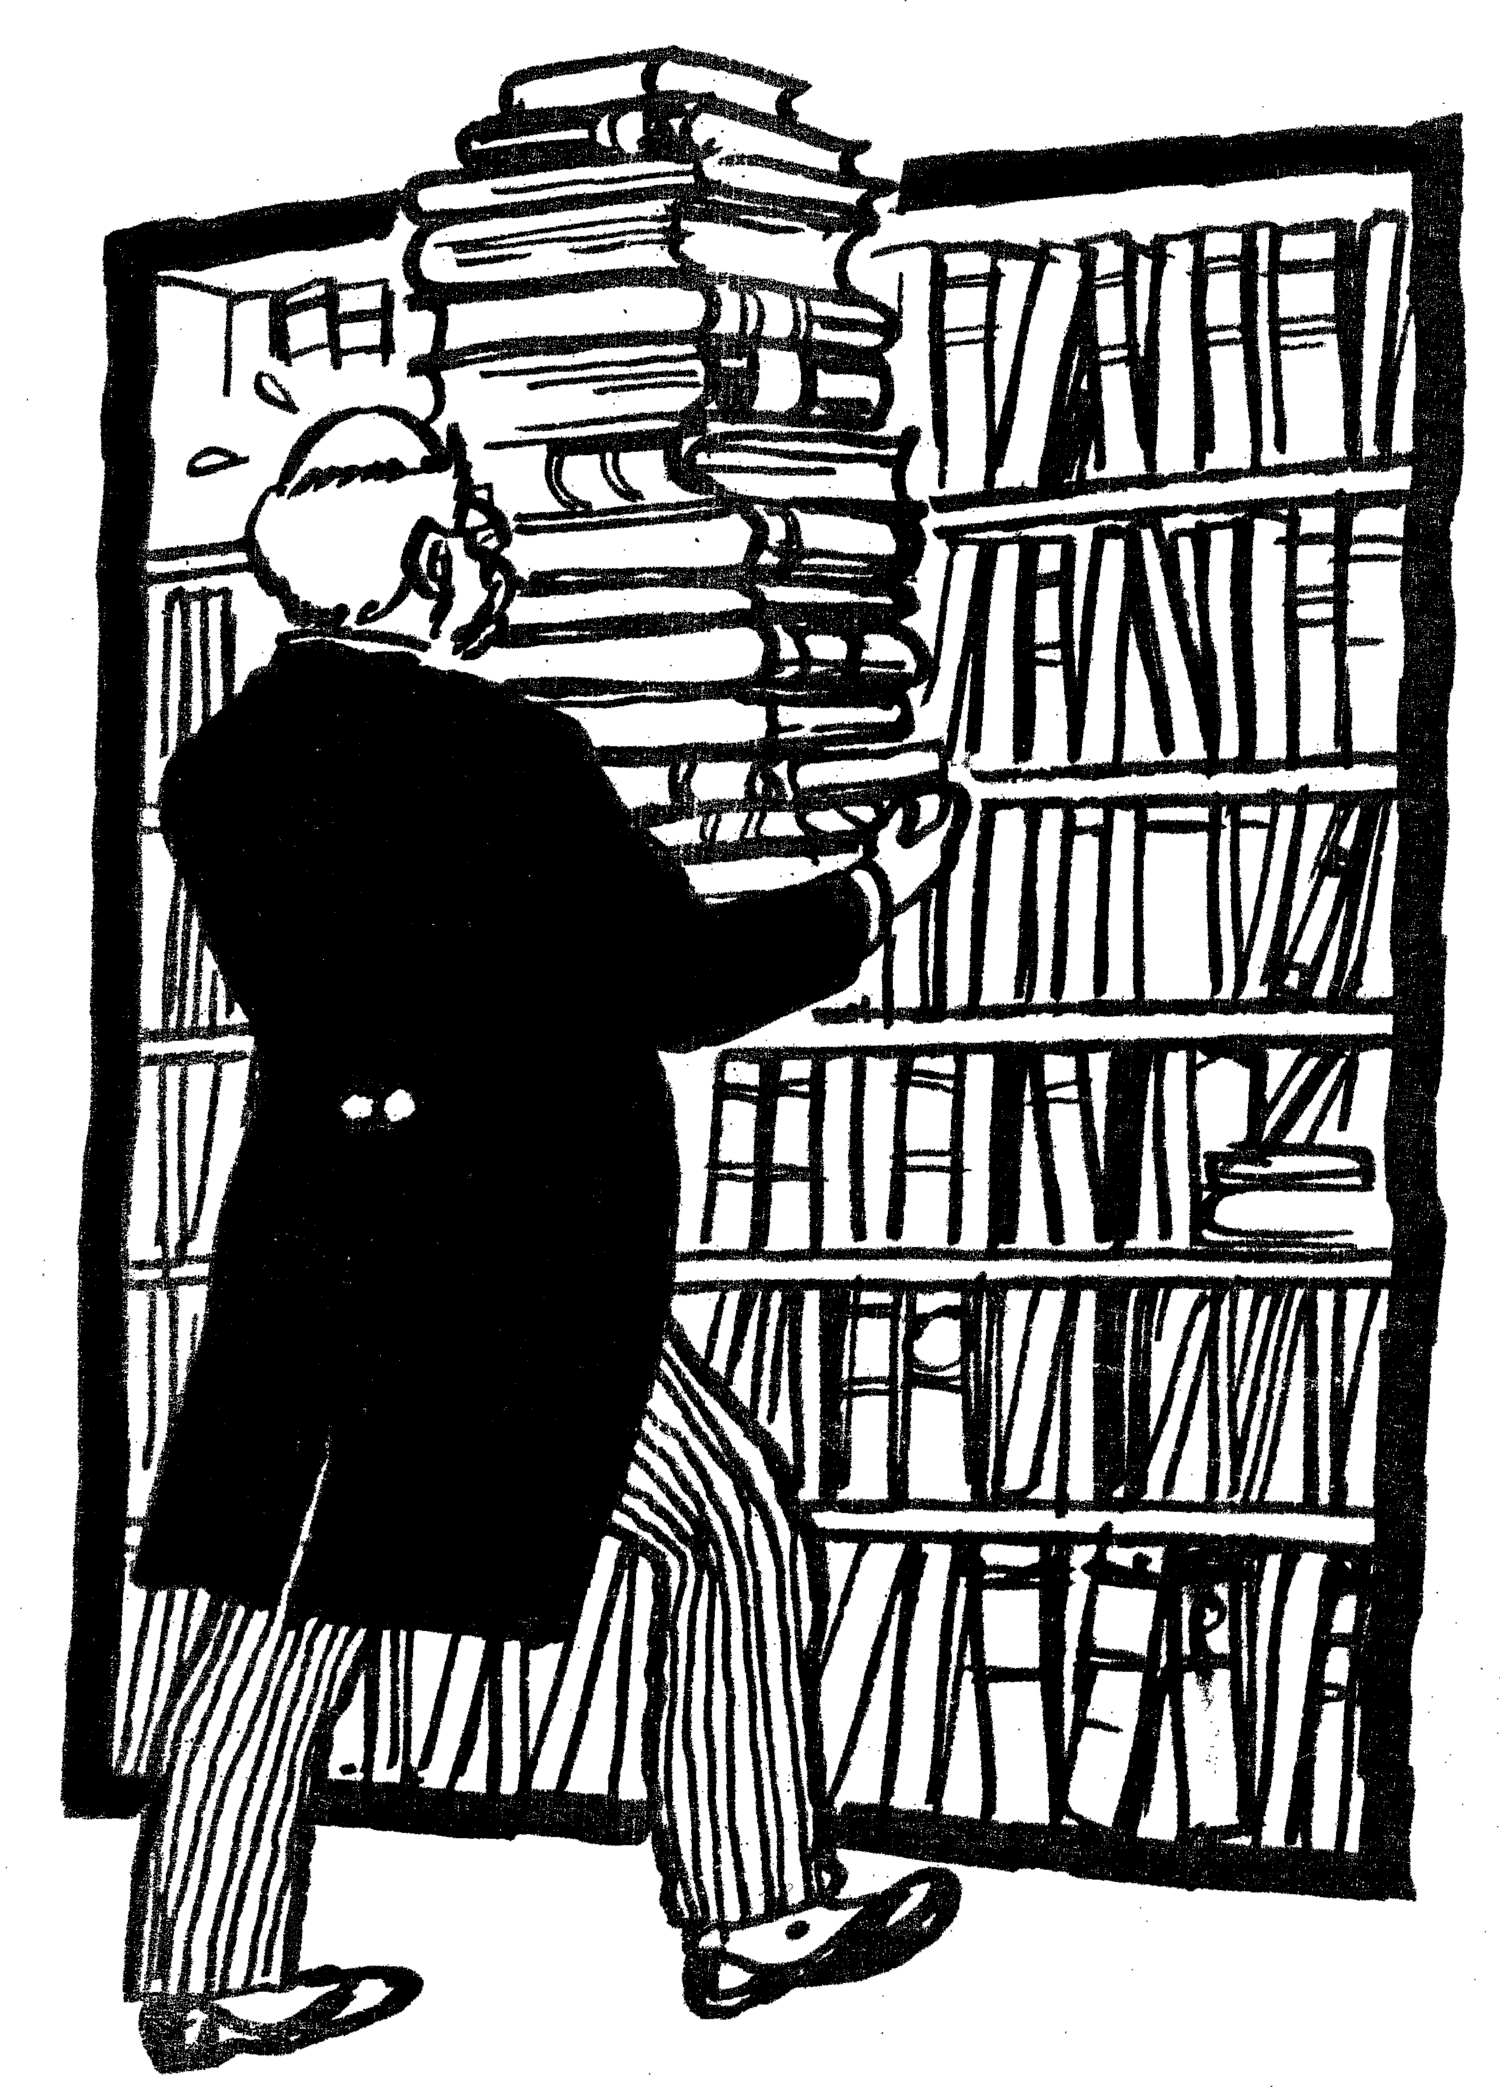 Holmes, Watson, Lestrade, Moriarty and Mrs Hudson all belonged to the same library. All five were returning books at the same time. The library shelved its books in alphabetical order by title instead of by author.  BORROWER TITLE  HOLMES GREAT DETECTIVES  WATSON MEDICINE  HUDSON THE COOK BOOK  MORIARTY GREAT CRIMINALS  LESTRADE POLICE  1. None of the borrowers returned the book listed against their name above.  2. Two books were overdue. Watson had one, the other was 'Medicine'.  3. The books returned by Holmes and Watson sat next to each other on the shelf.  4. Mrs Hudson had to pay a fine for a late return.  Can you match up all five titles with the borrower?